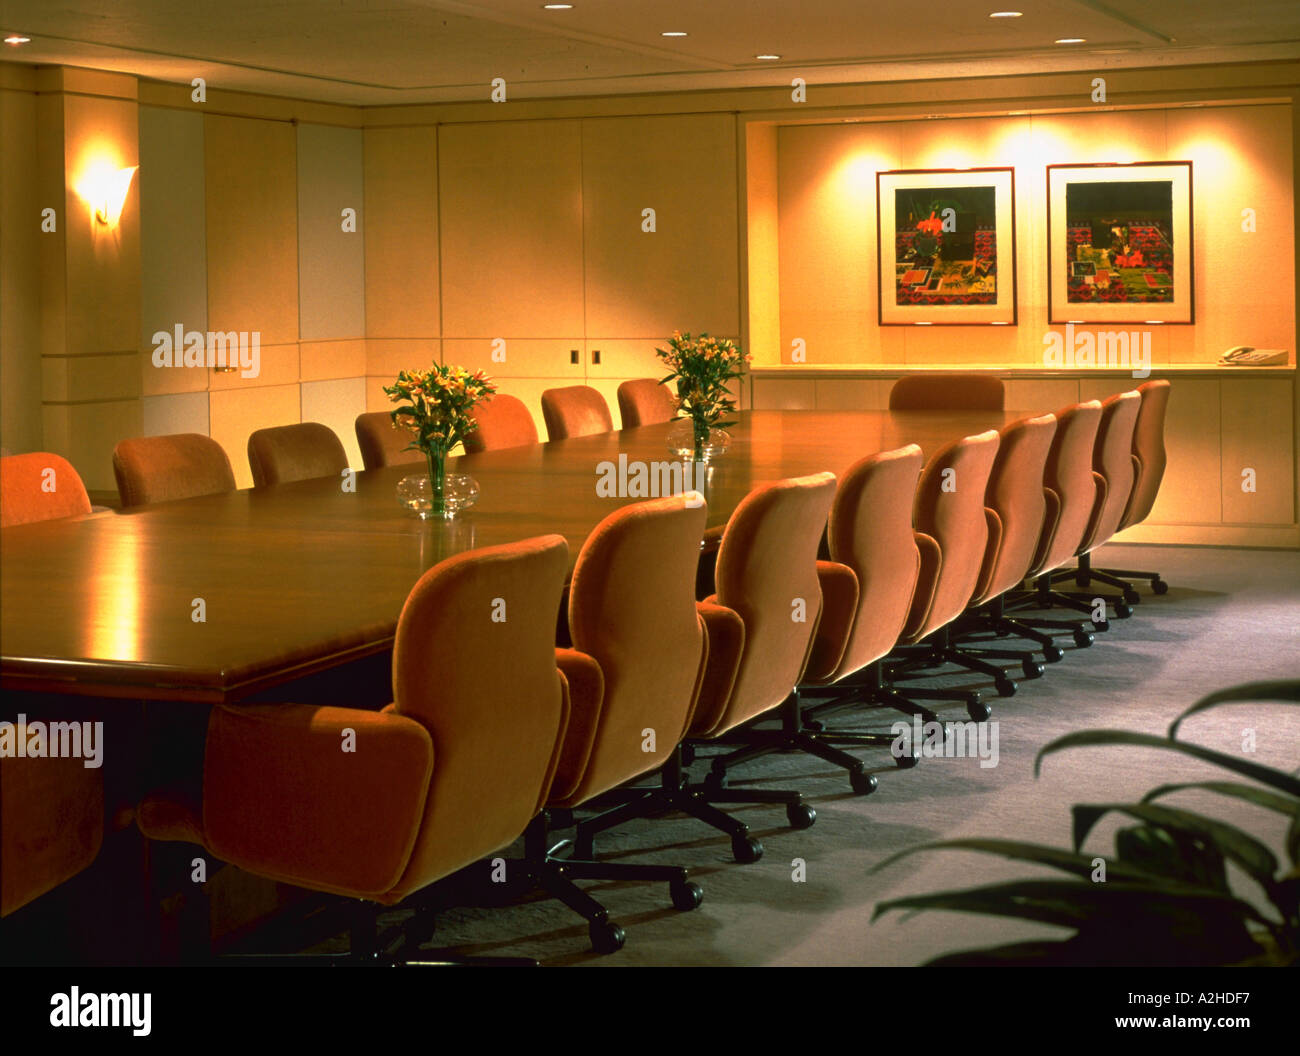 An Executive Meeting Room With A Large Wooden Conference Table And - Large wooden conference table